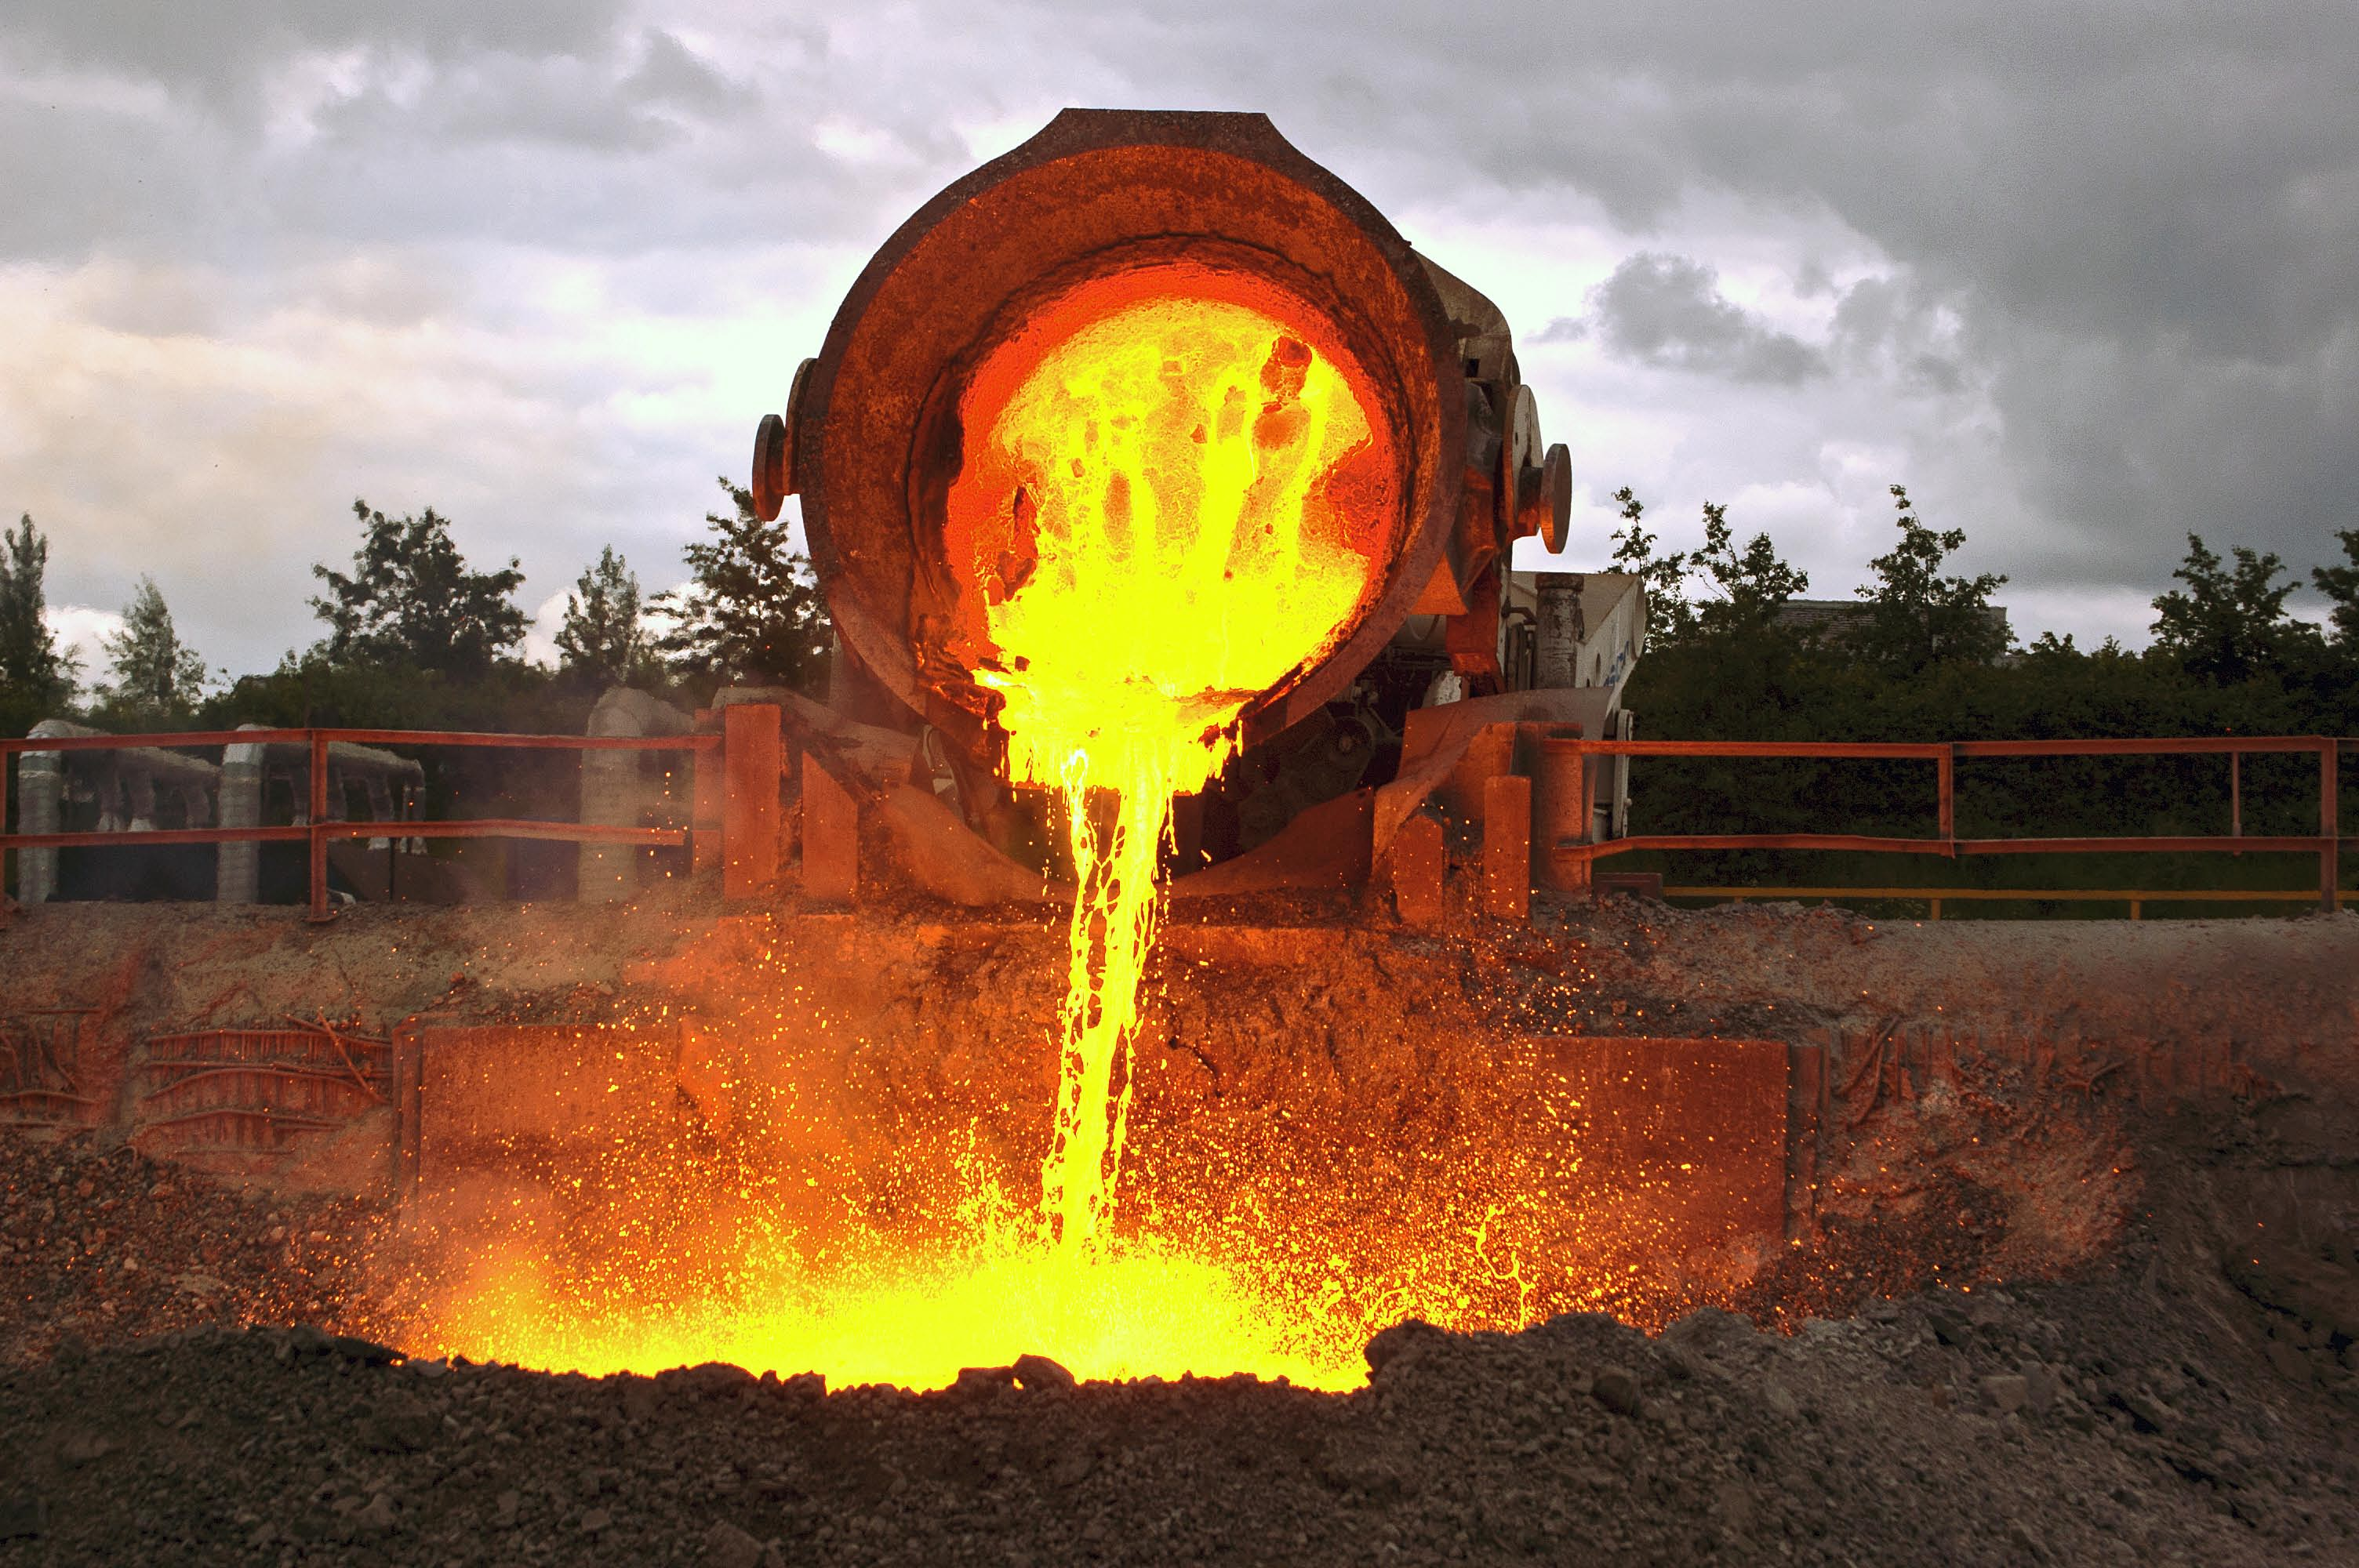 Tipping slag at Outokumpu Steelworks during Clan Line's visit